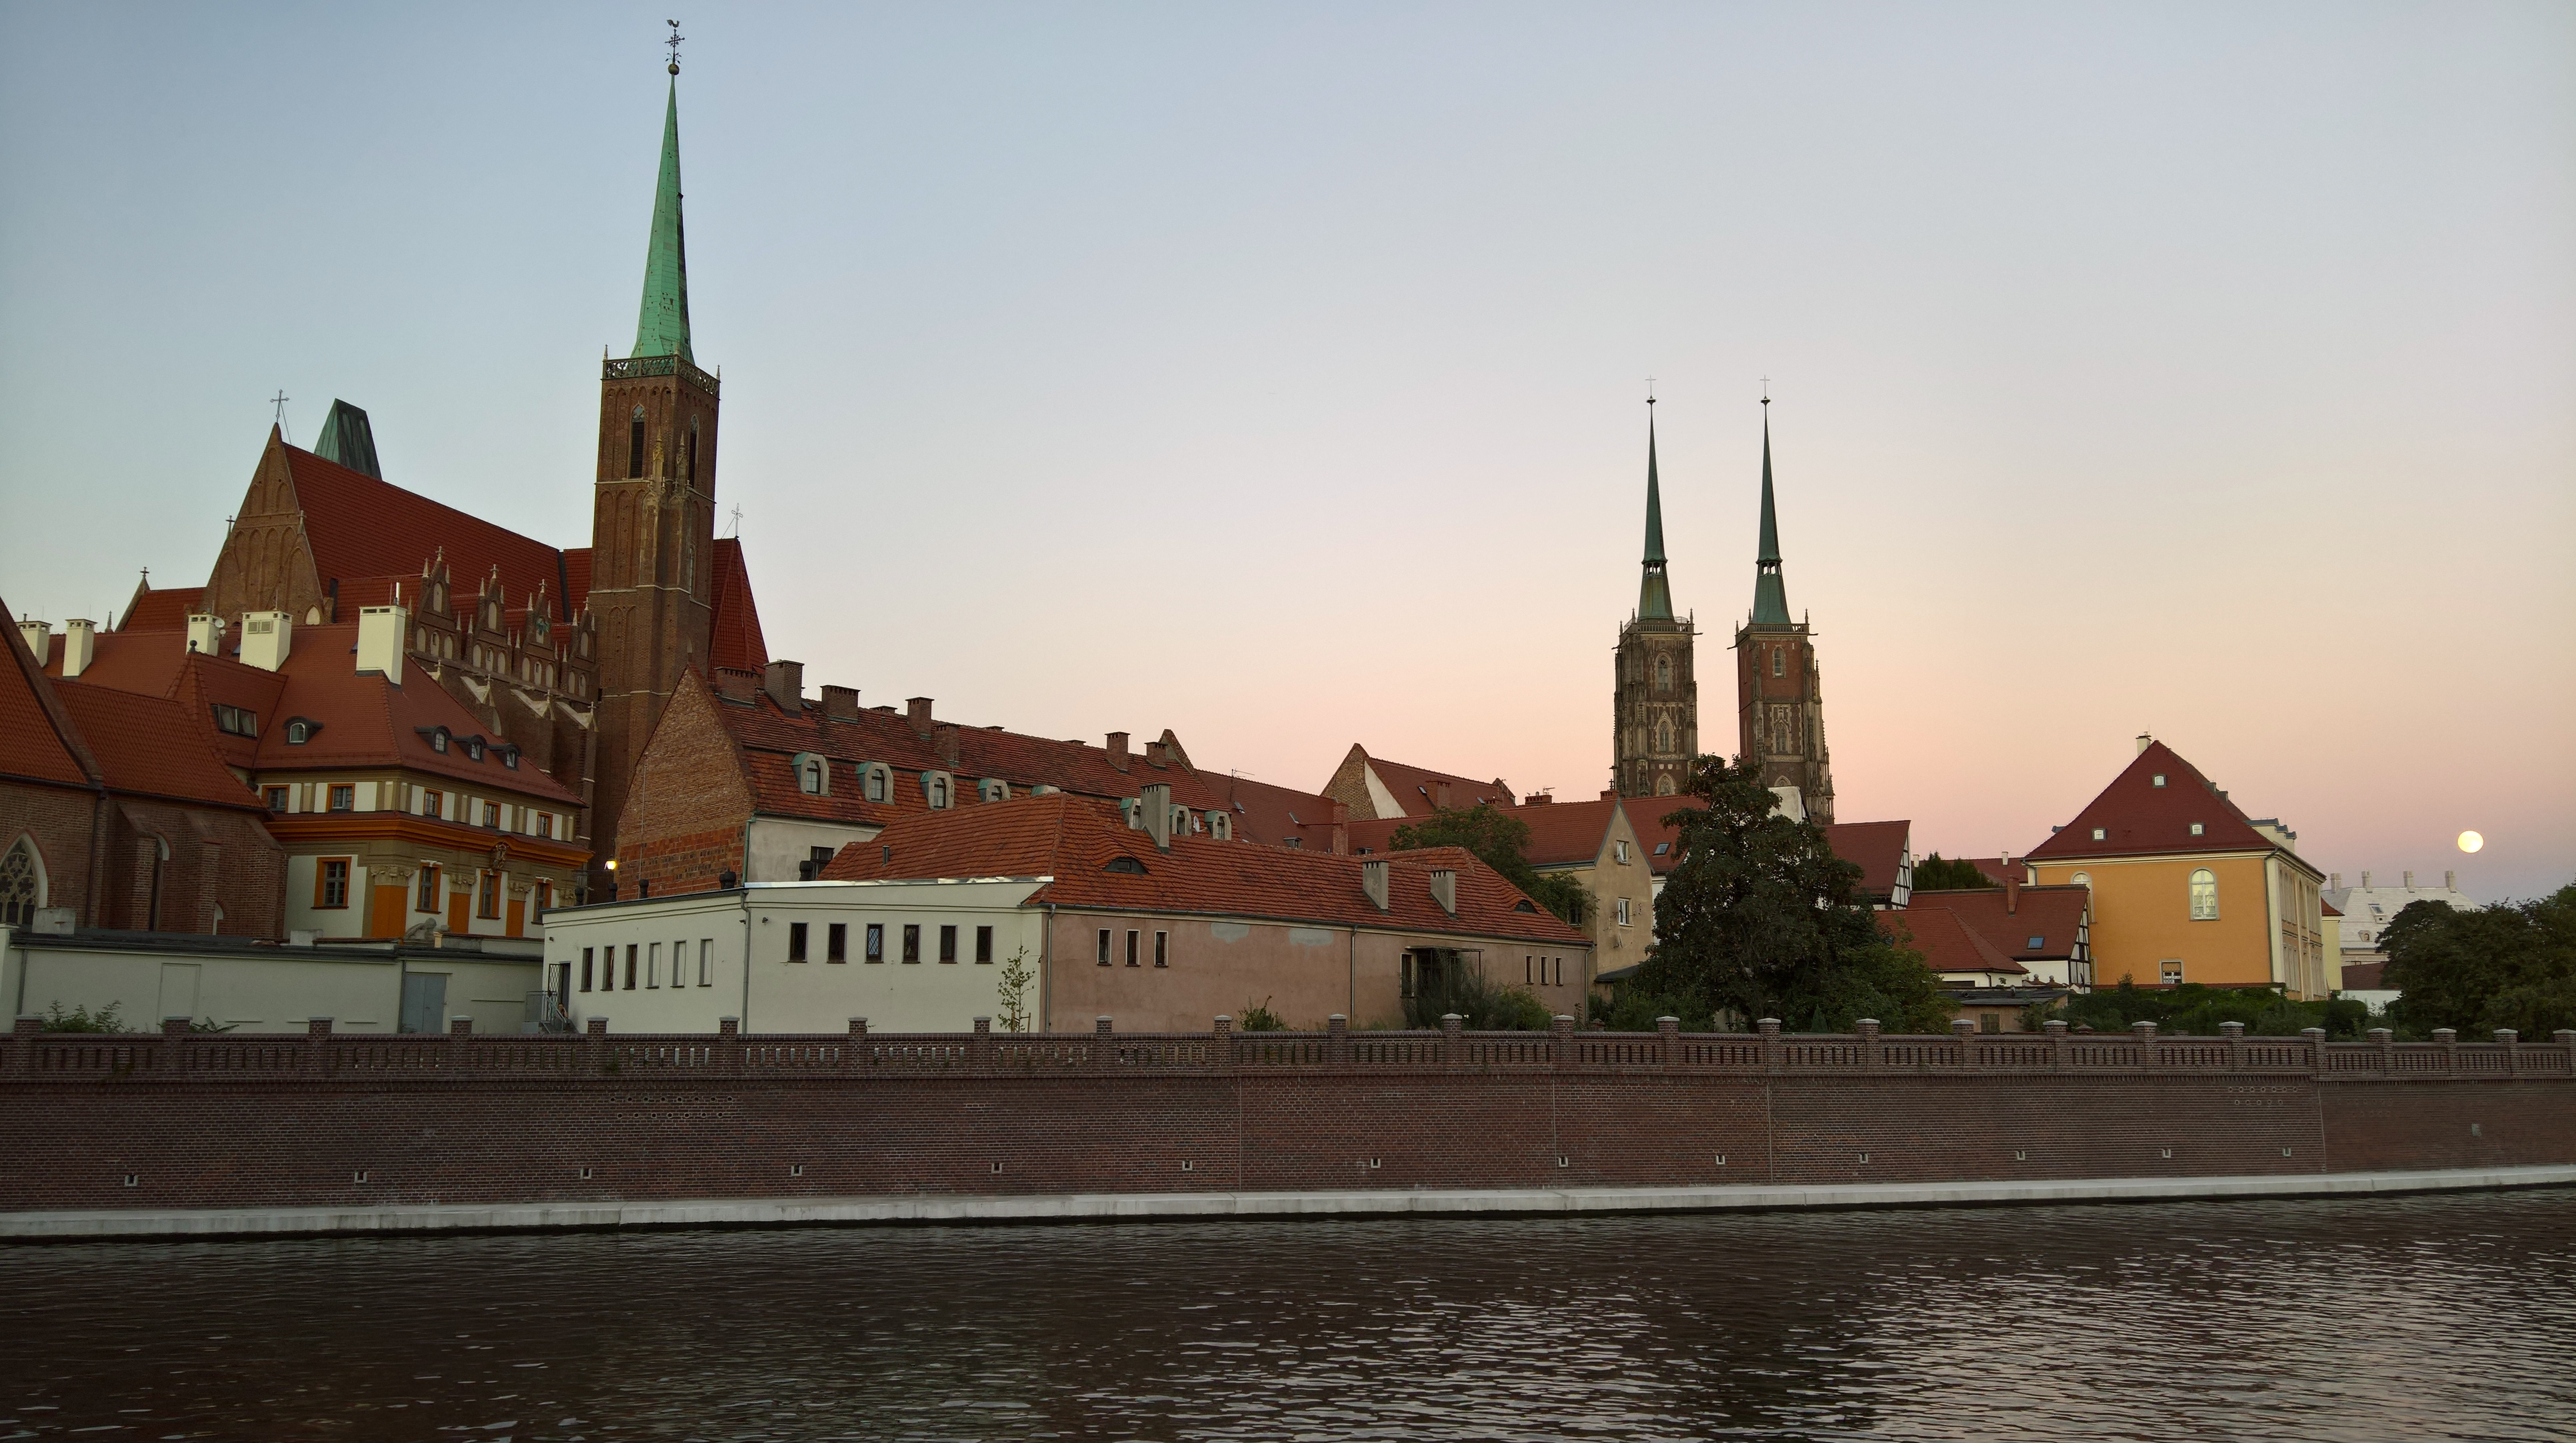 Wrocław - the city of a thousand bridges (and a thousand church spires)